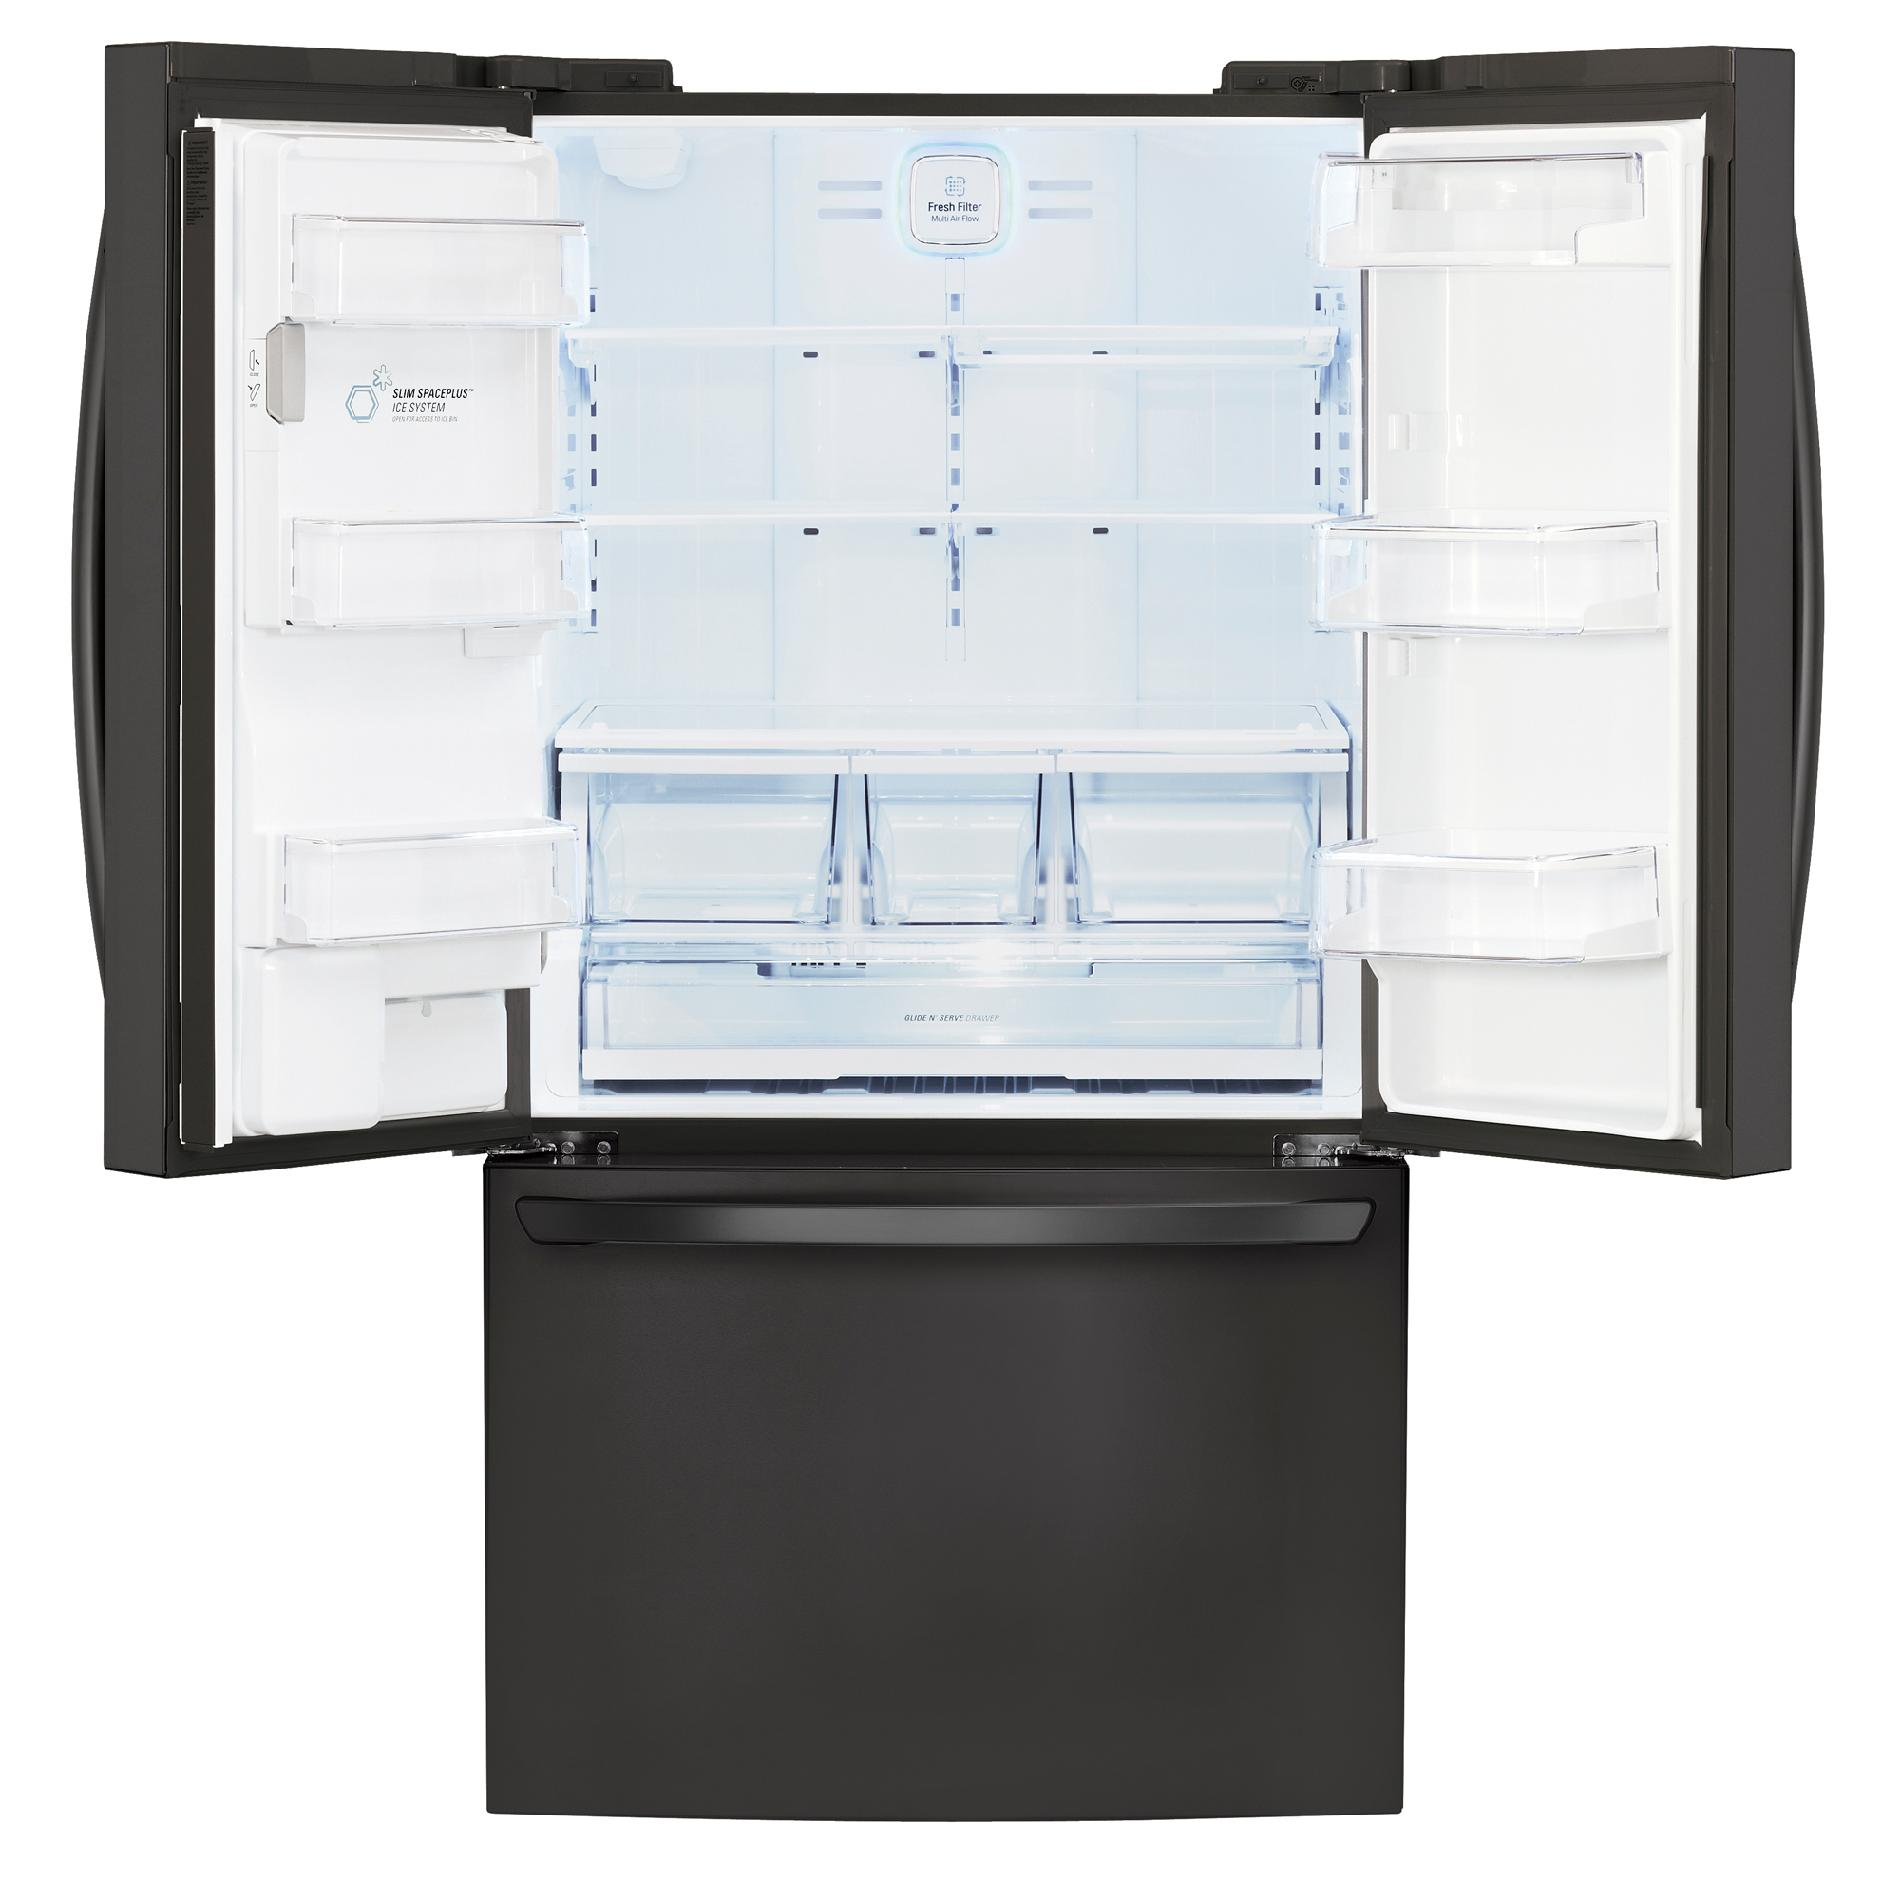 LG 29 cu. ft. French Door Bottom-Freezer Refrigerator w/ Dual Ice Makers - Black